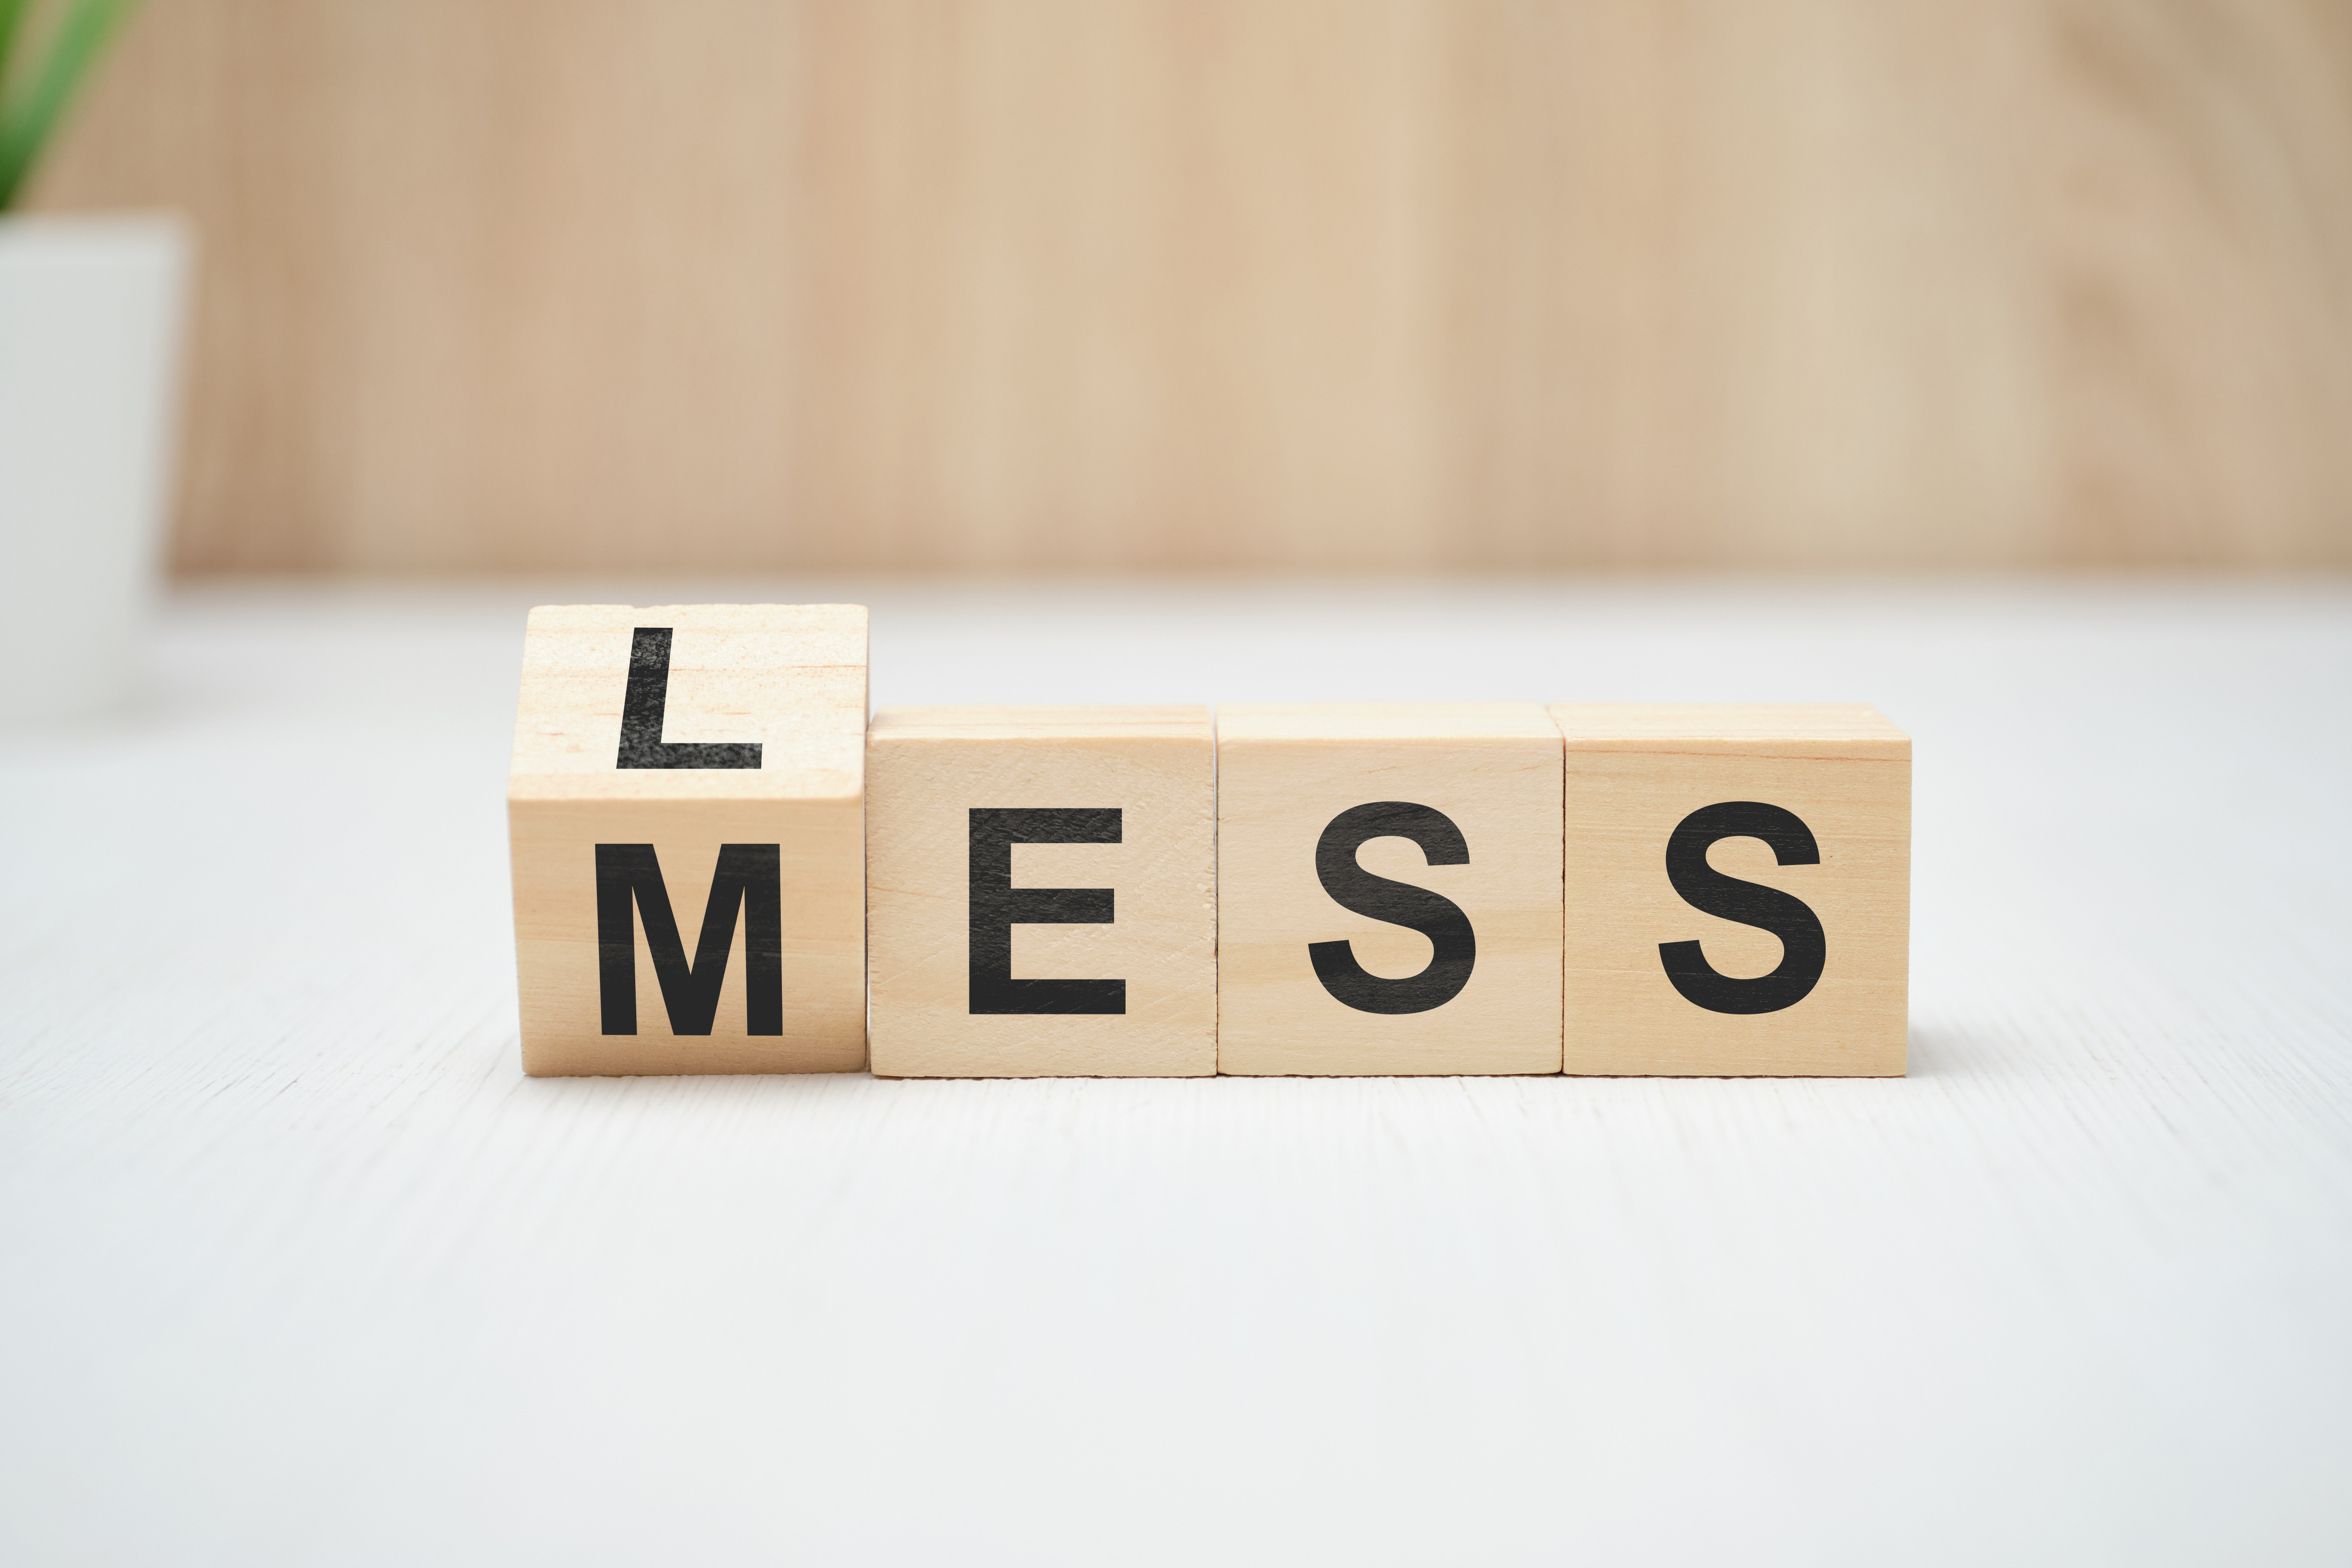 Less mess words on wooden blocks. Close